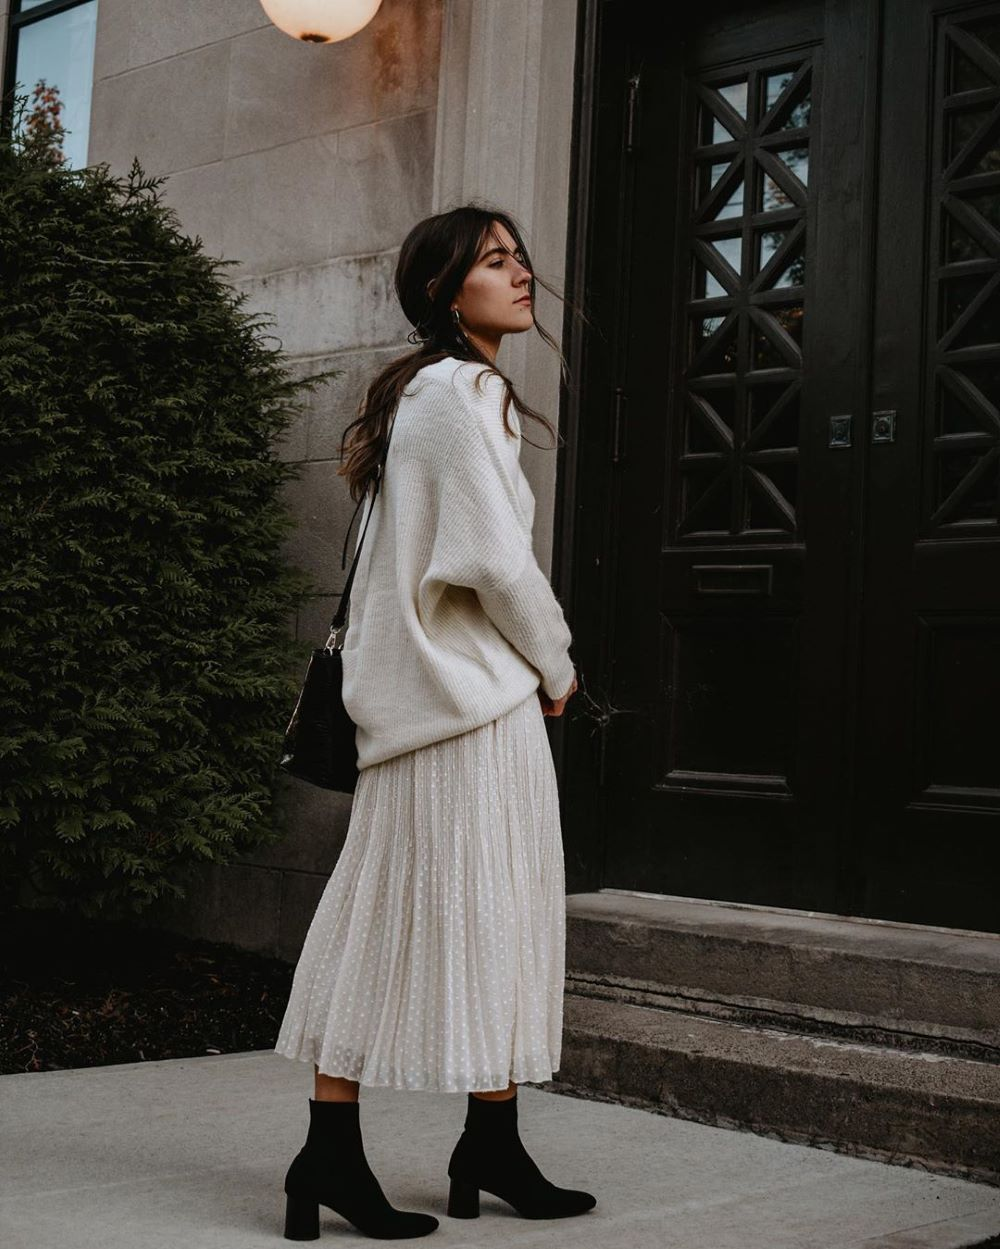 20 Sweater Outfits to Copy This Cozy Season   Lulus.com Fashion Blog